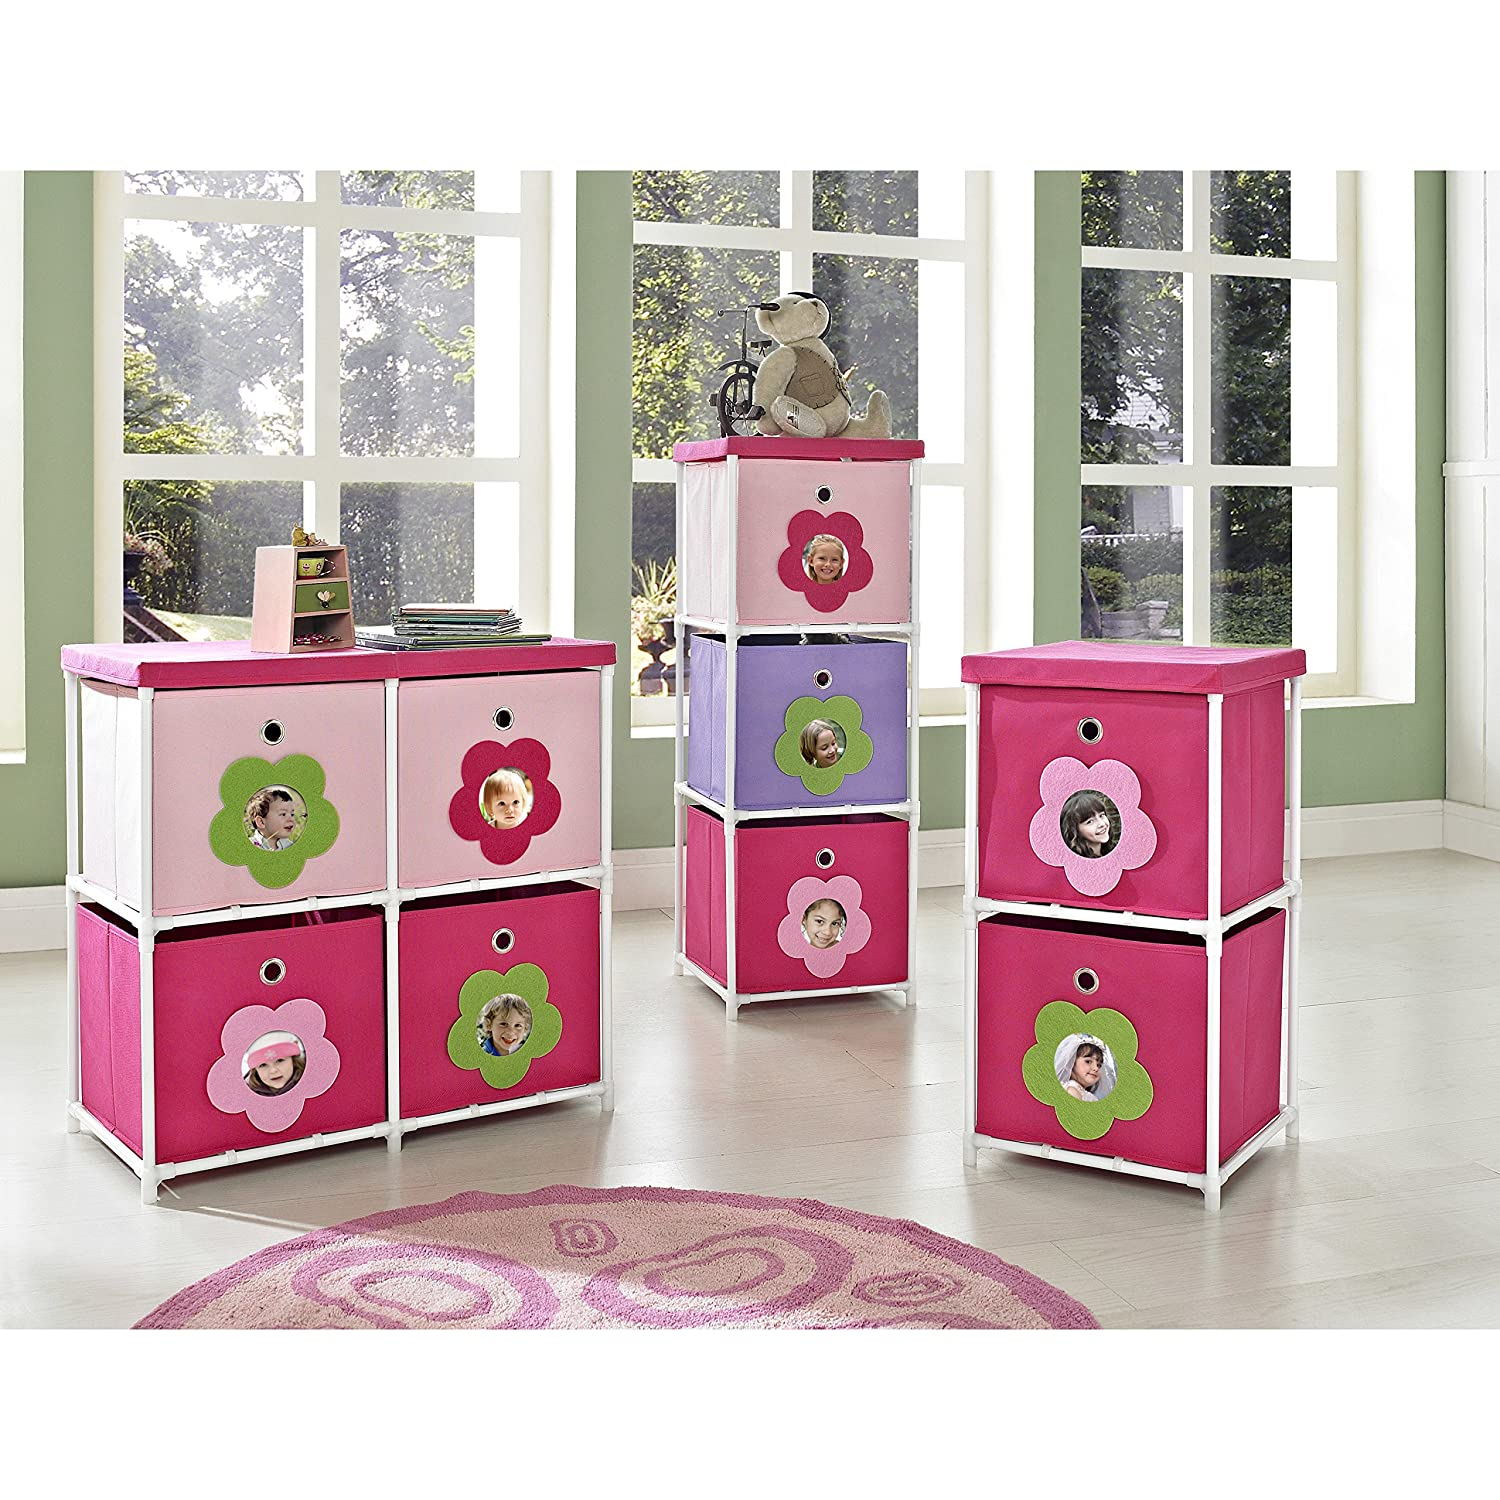 Amazon.com: Kidsu0027 4 Cube Toy Organizer, Toy Storage Bin: Kitchen U0026 Dining Design Inspirations